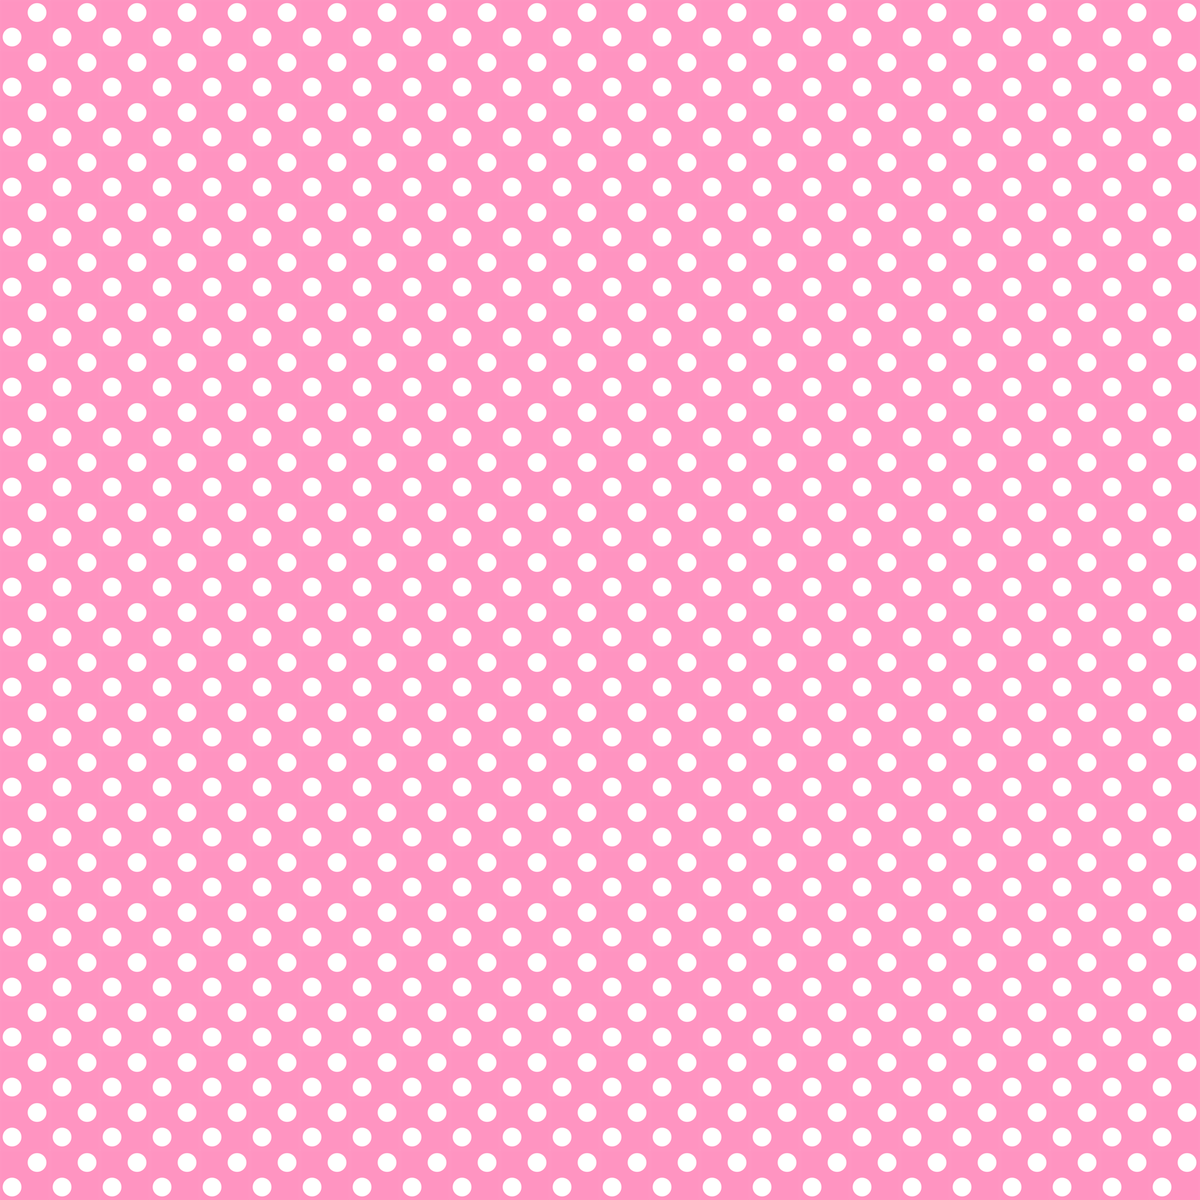 Pink Polka Dot Wallpaper: Free Digital Polka Dot Scrapbooking Papers